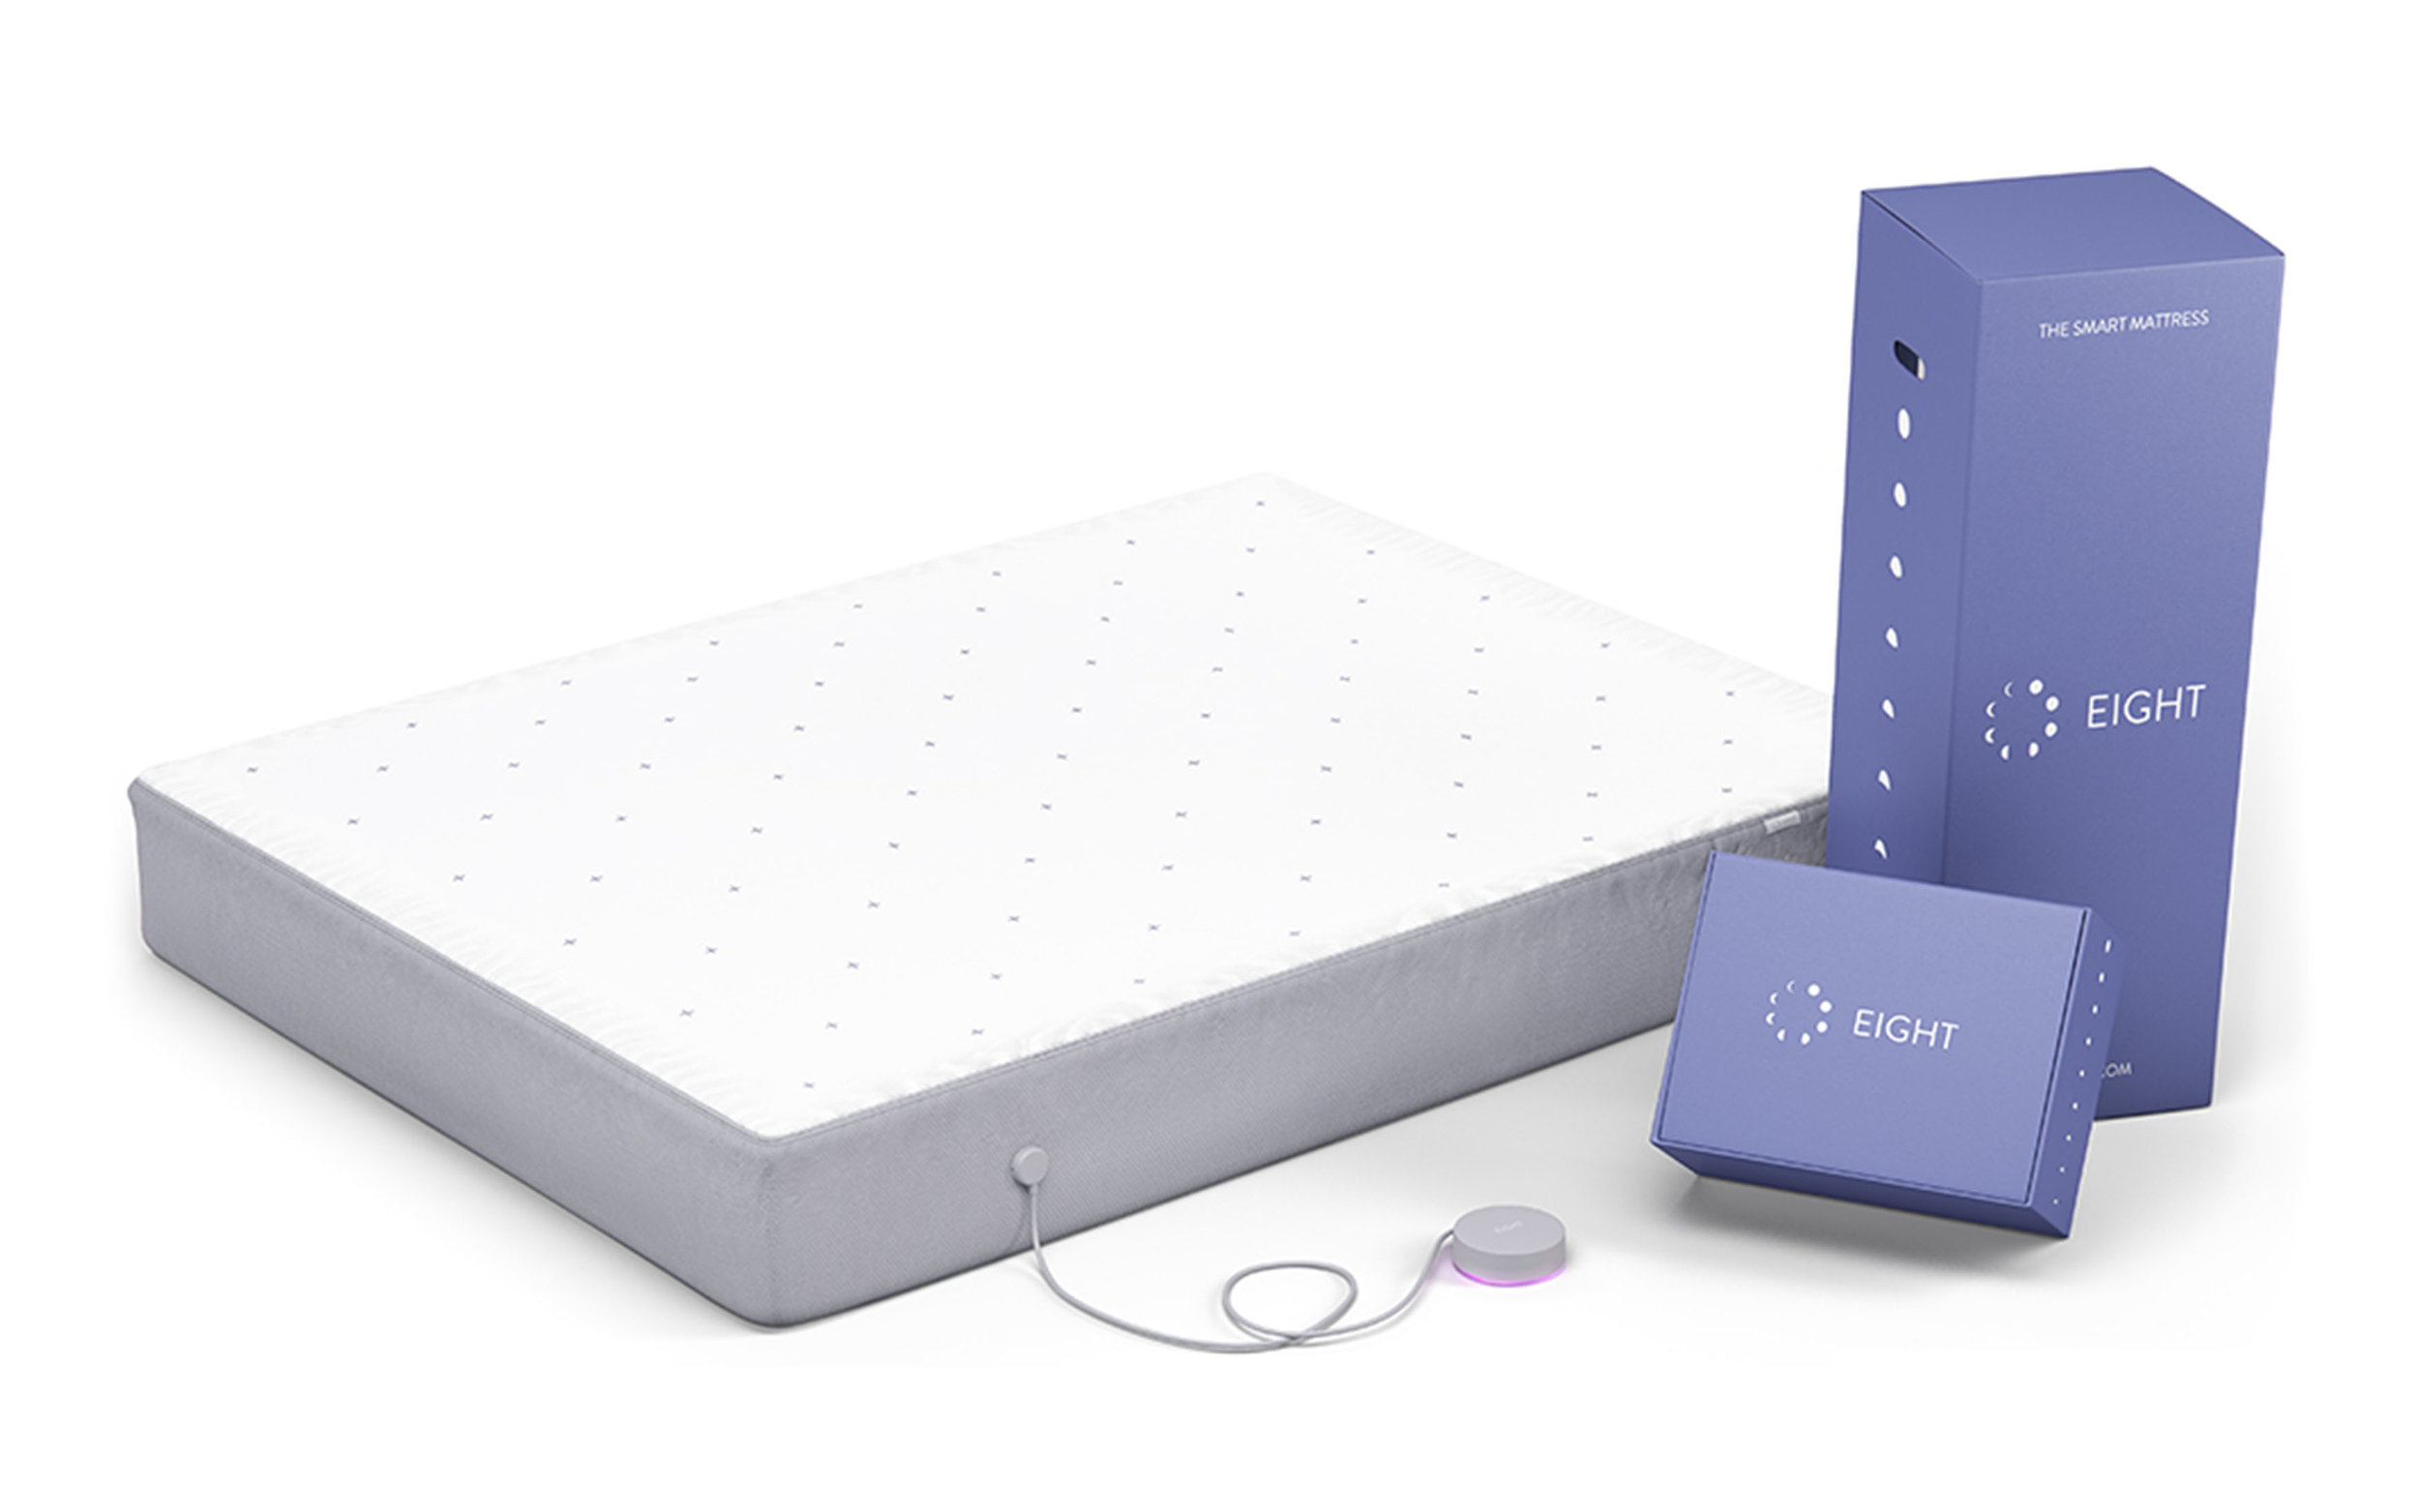 The Eight Smart Mattress.jpg